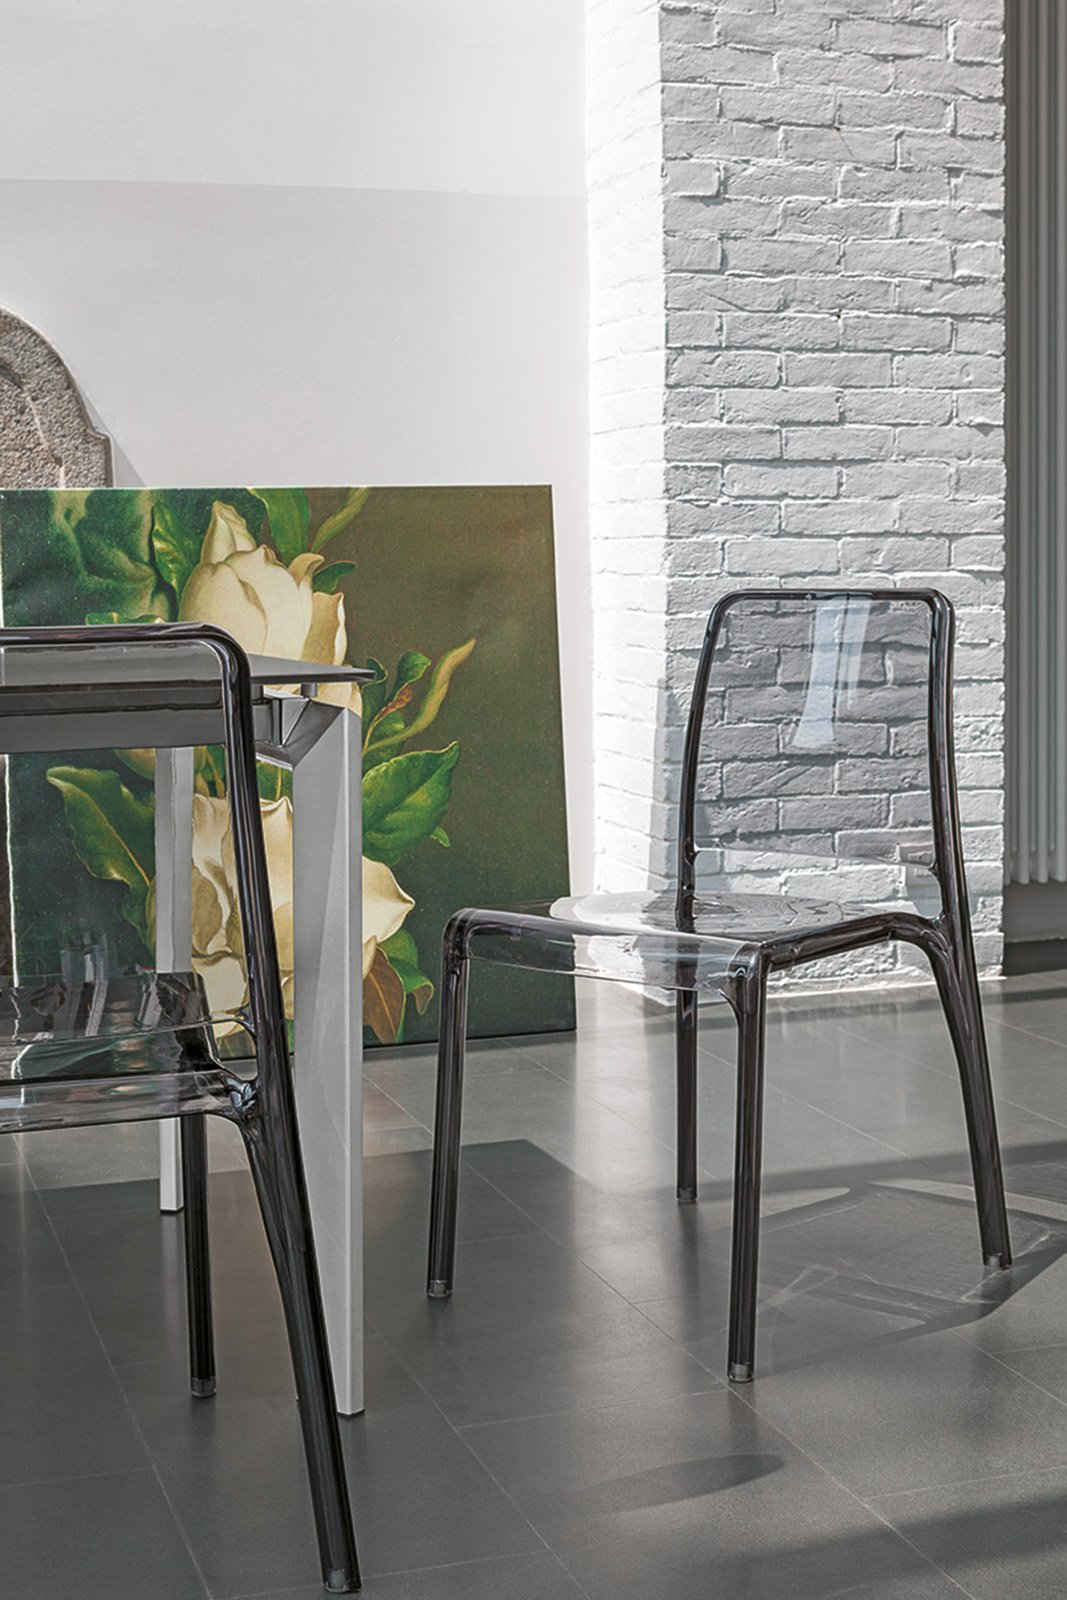 Elegant gallery of sedie plexiglass calligaris with sedie for Sedie calligaris trasparenti